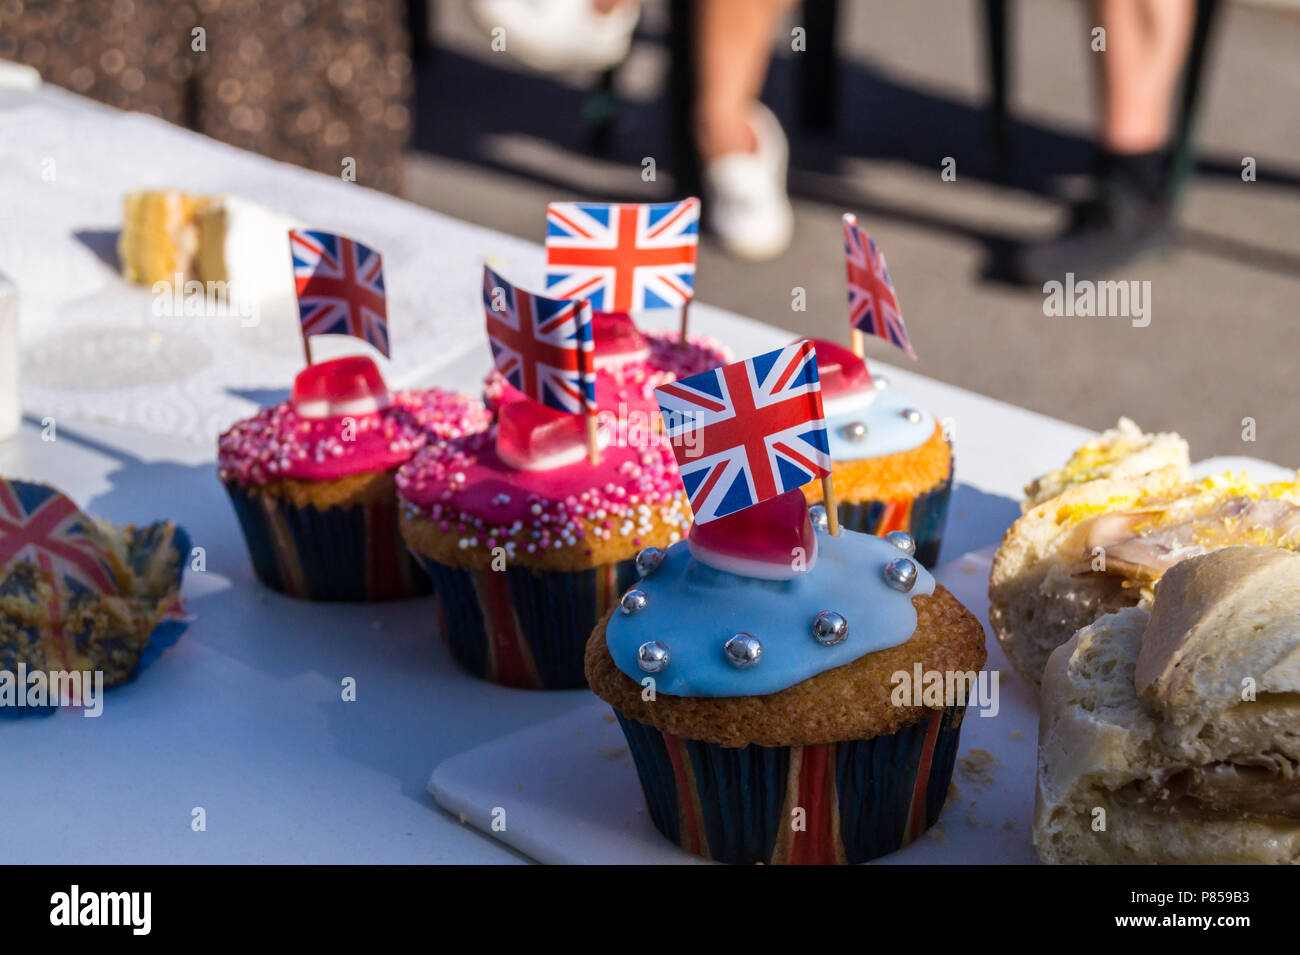 fairly-cakes-with-union-flags-street-party-wedding-of-prince-harry-and-meghan-markle-may-19th-2018-fullers-road-london-e18-england-P859B3.jpg